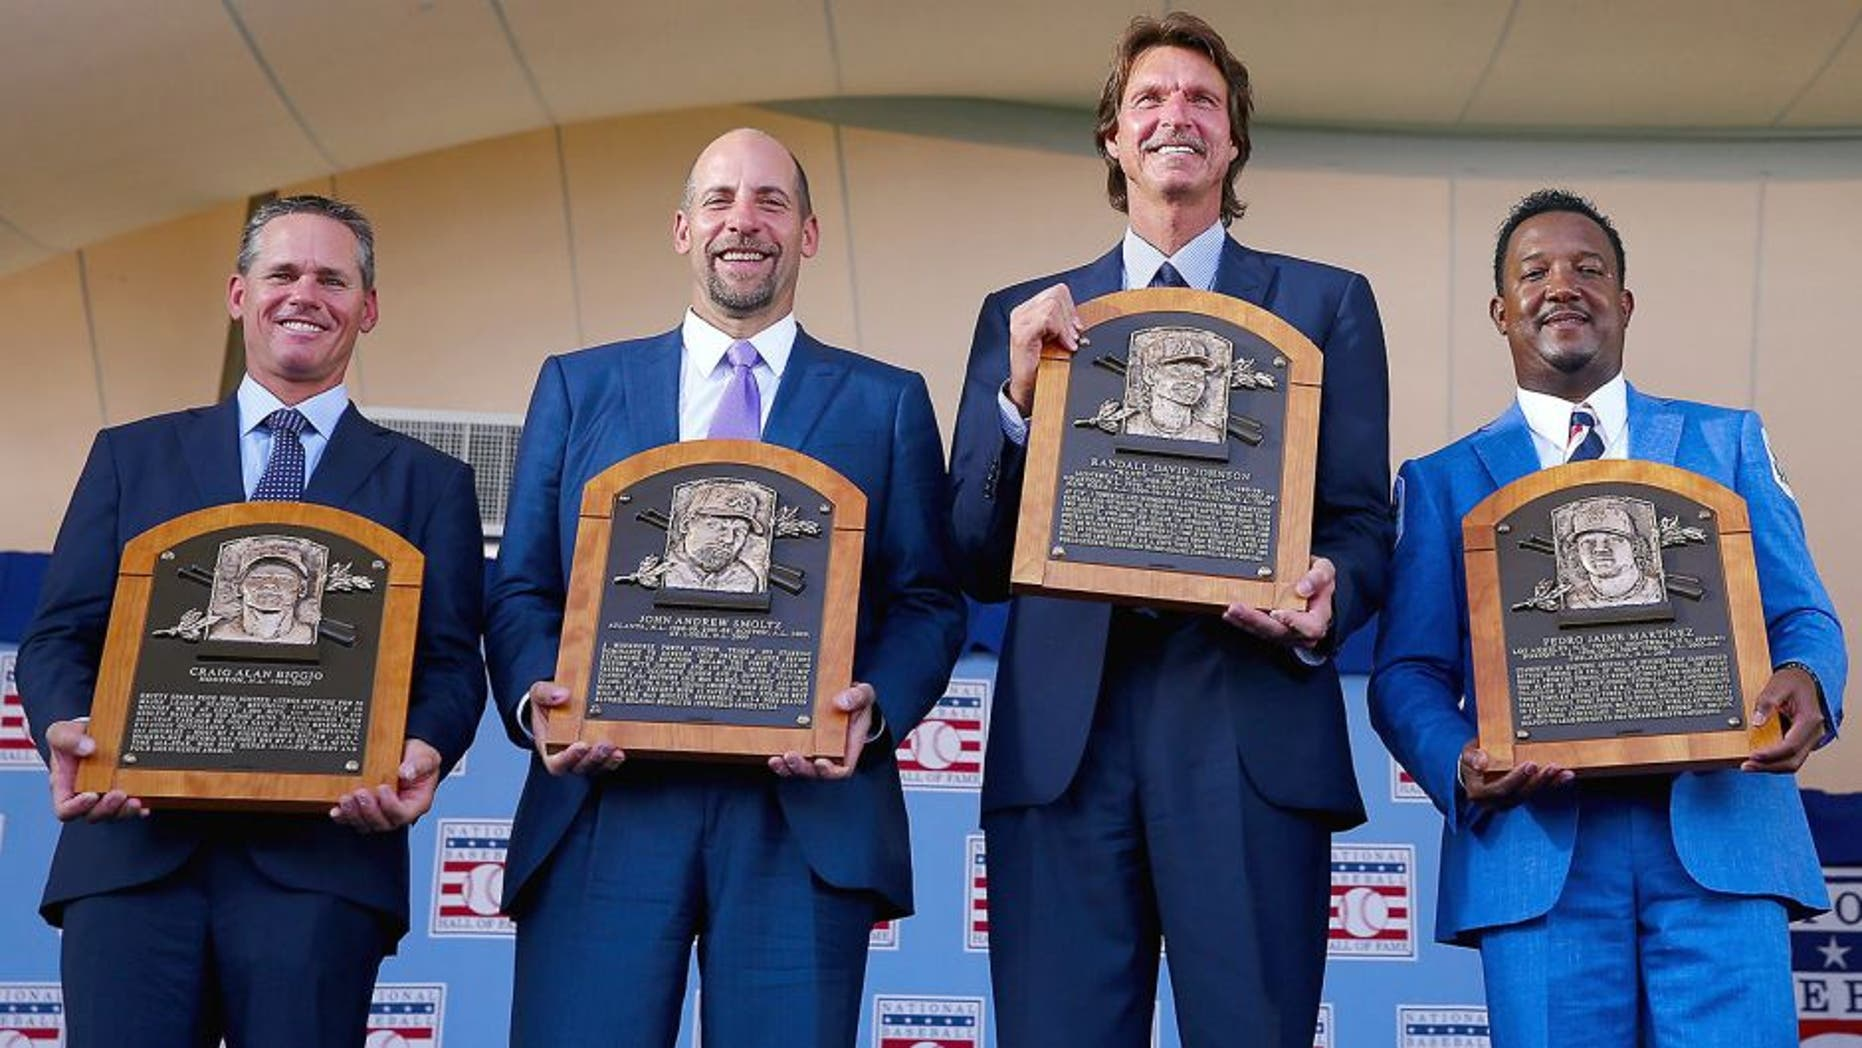 COOPERSTOWN, NY - JULY 26: 2015 Inductees Craig Biggio,John Smoltz,Randy Johnson and Pedro Martinez pose with their plaques after the Induction Ceremony at National Baseball Hall of Fame on July 26, 2015 in Cooperstown, New York. (Photo by Elsa/Getty Images)